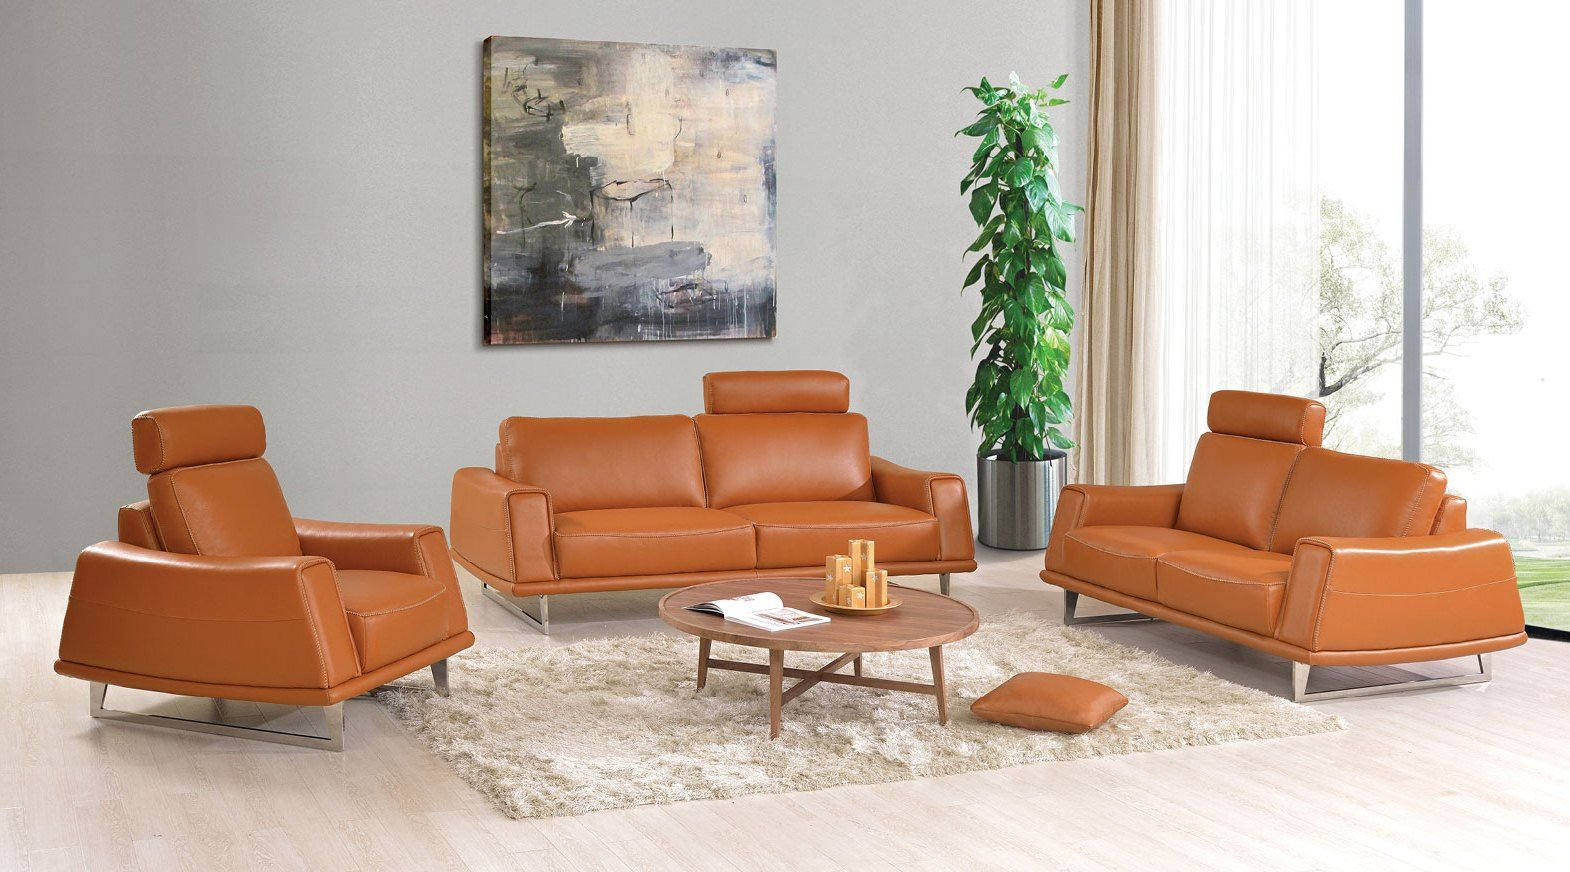 Exclusive Ledersofas ledersofas outlet affordable sectional sofa with ottoman l beige